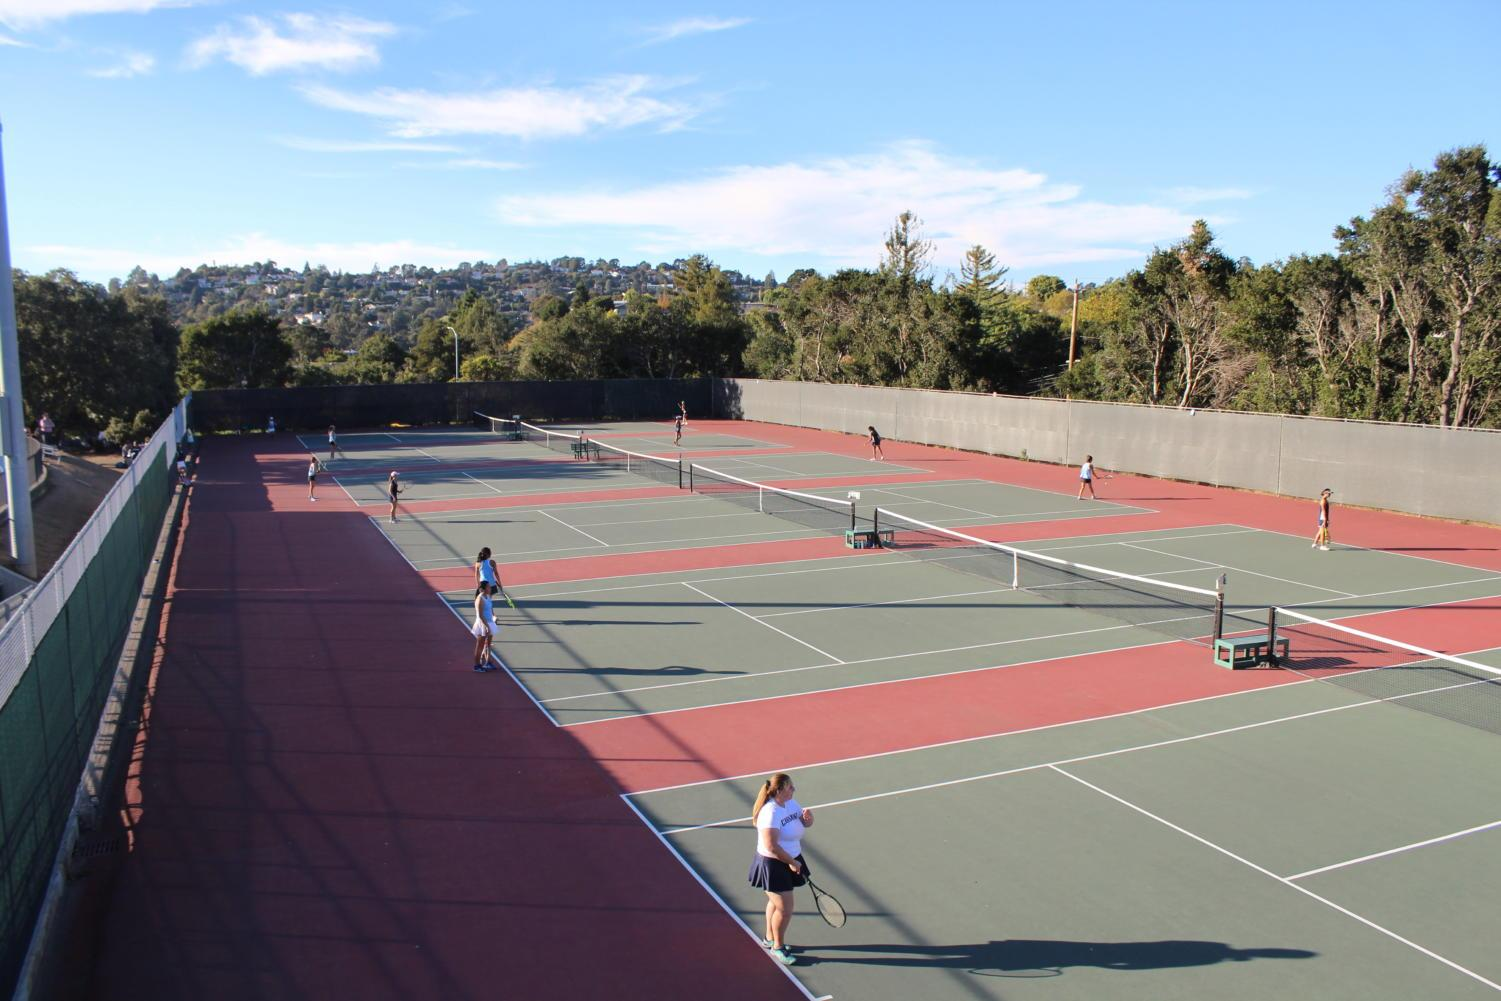 Doubles+and+singles+matches+are+held+simultaneously+on+the+Carlmont+tennis+courts.